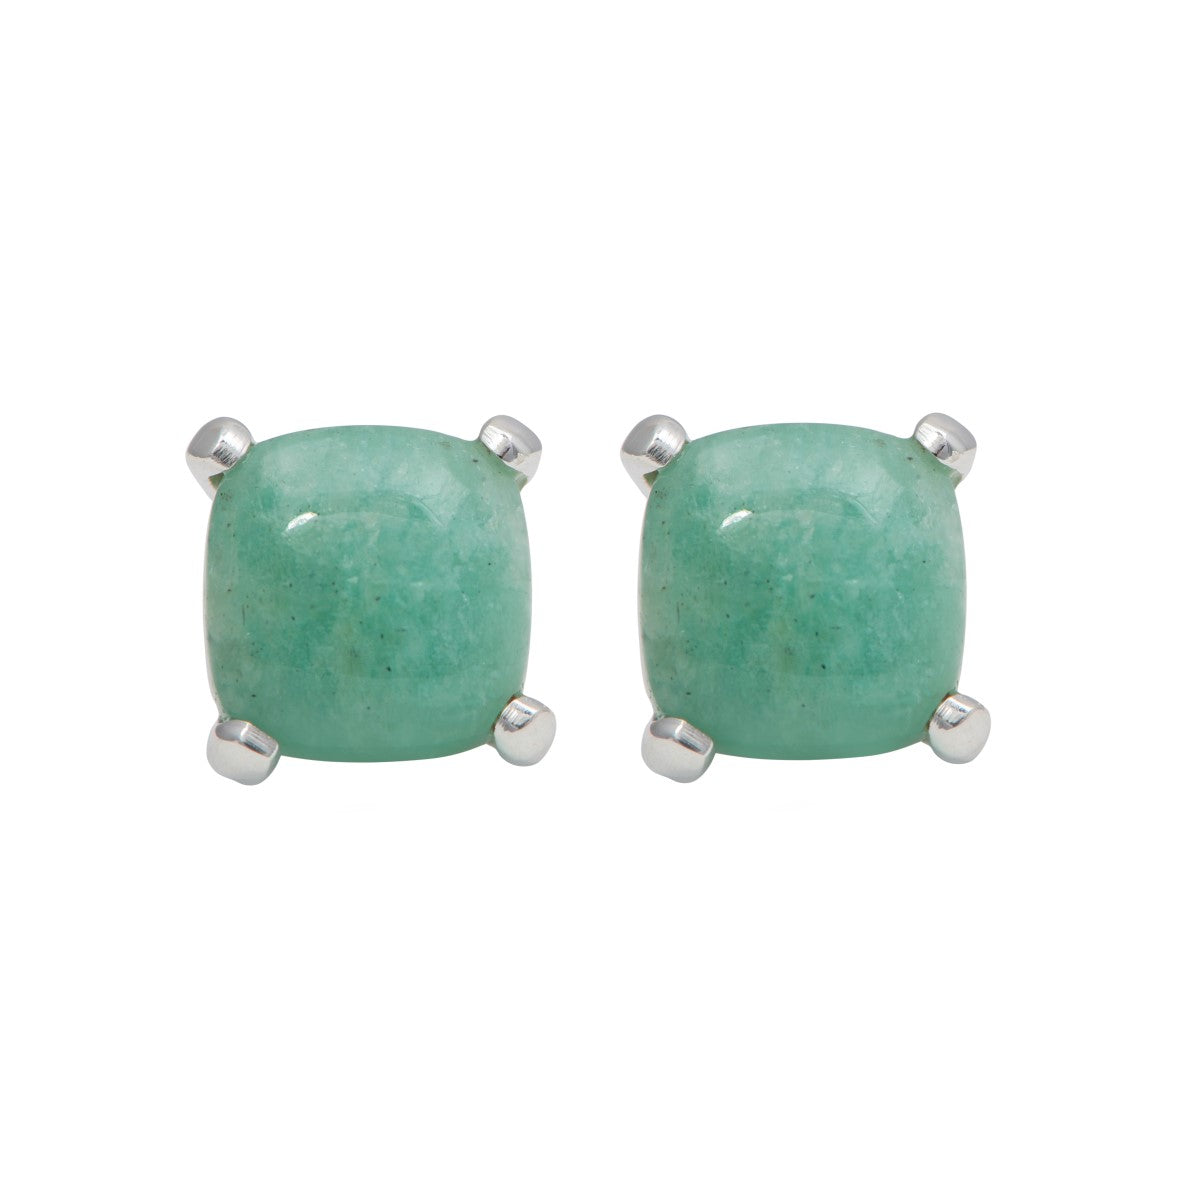 Square Cabochon Amazonite Stud Earrings in Sterling Silver